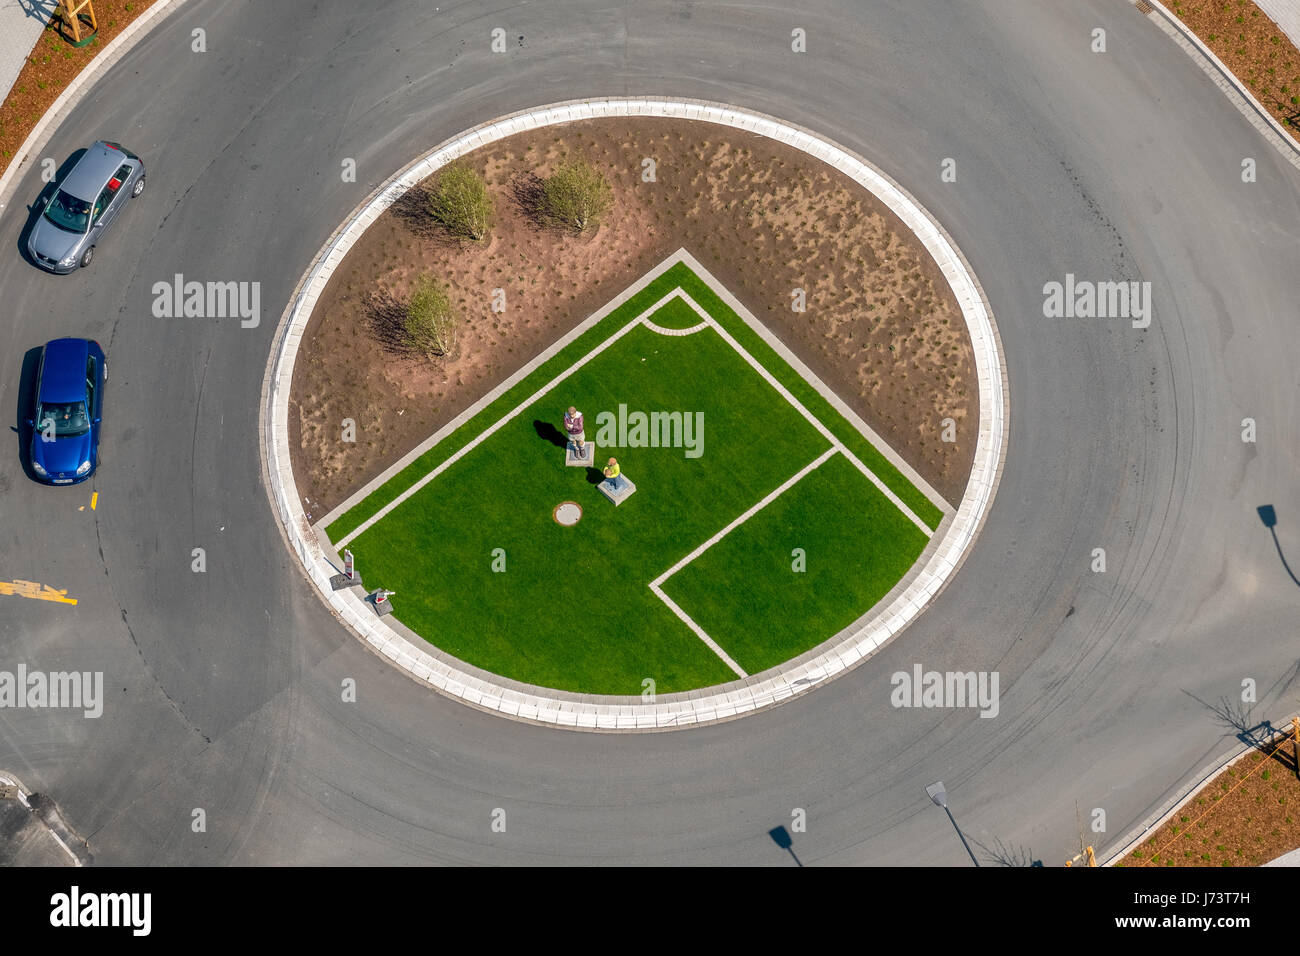 Hrubesch monument is located in the traffic island island in the Pelkumer roundabout, football legend Horst Hrubesch, - Stock Image